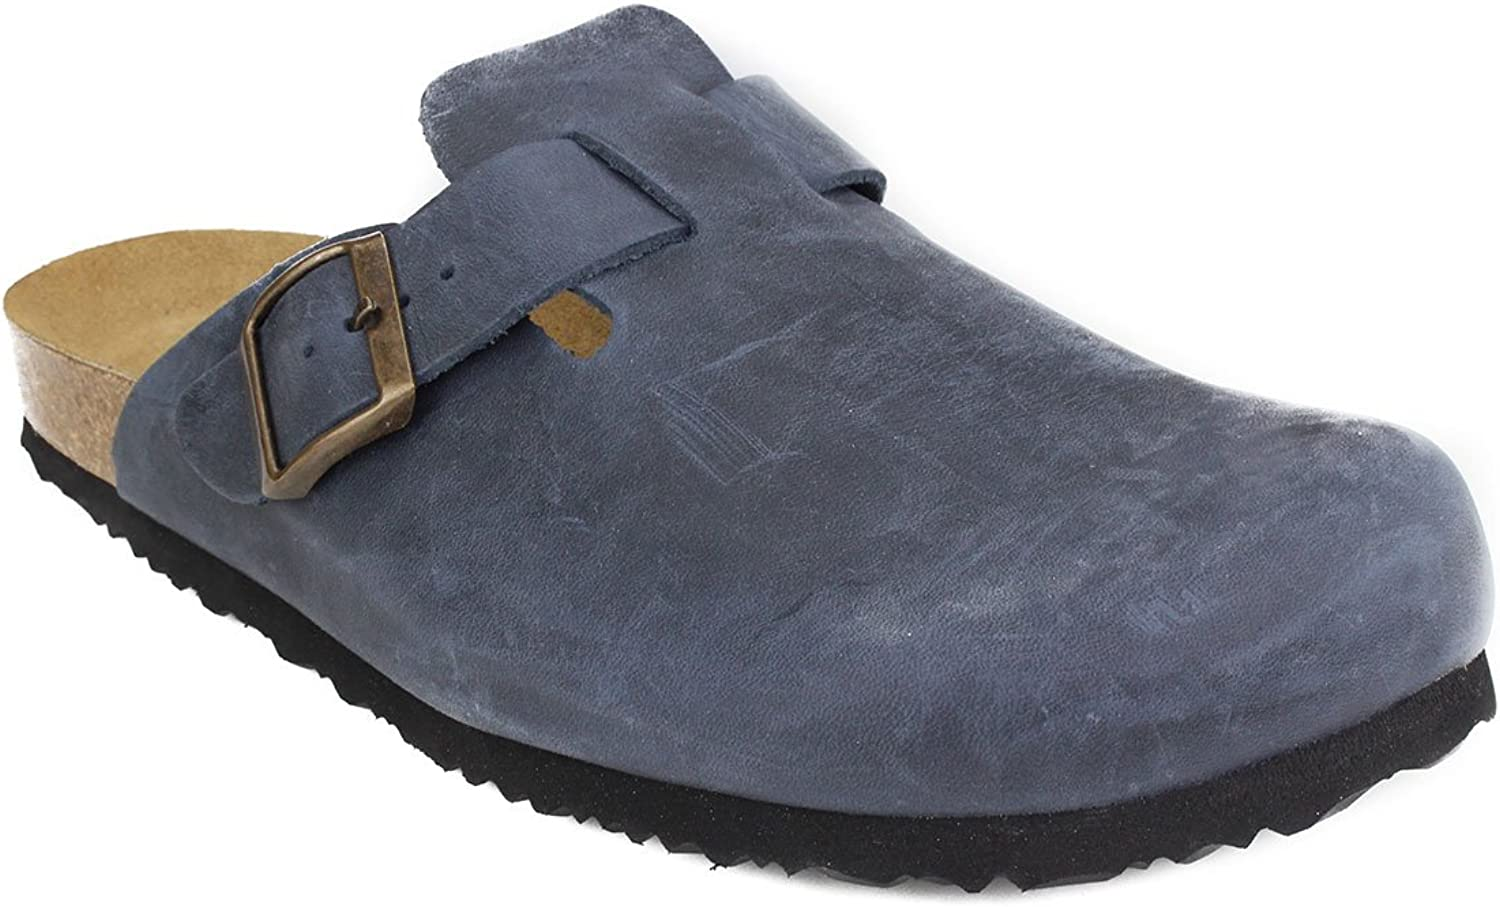 JOE N JOYCE Soft Slippers Clogs shoes Leather Regular - Mens